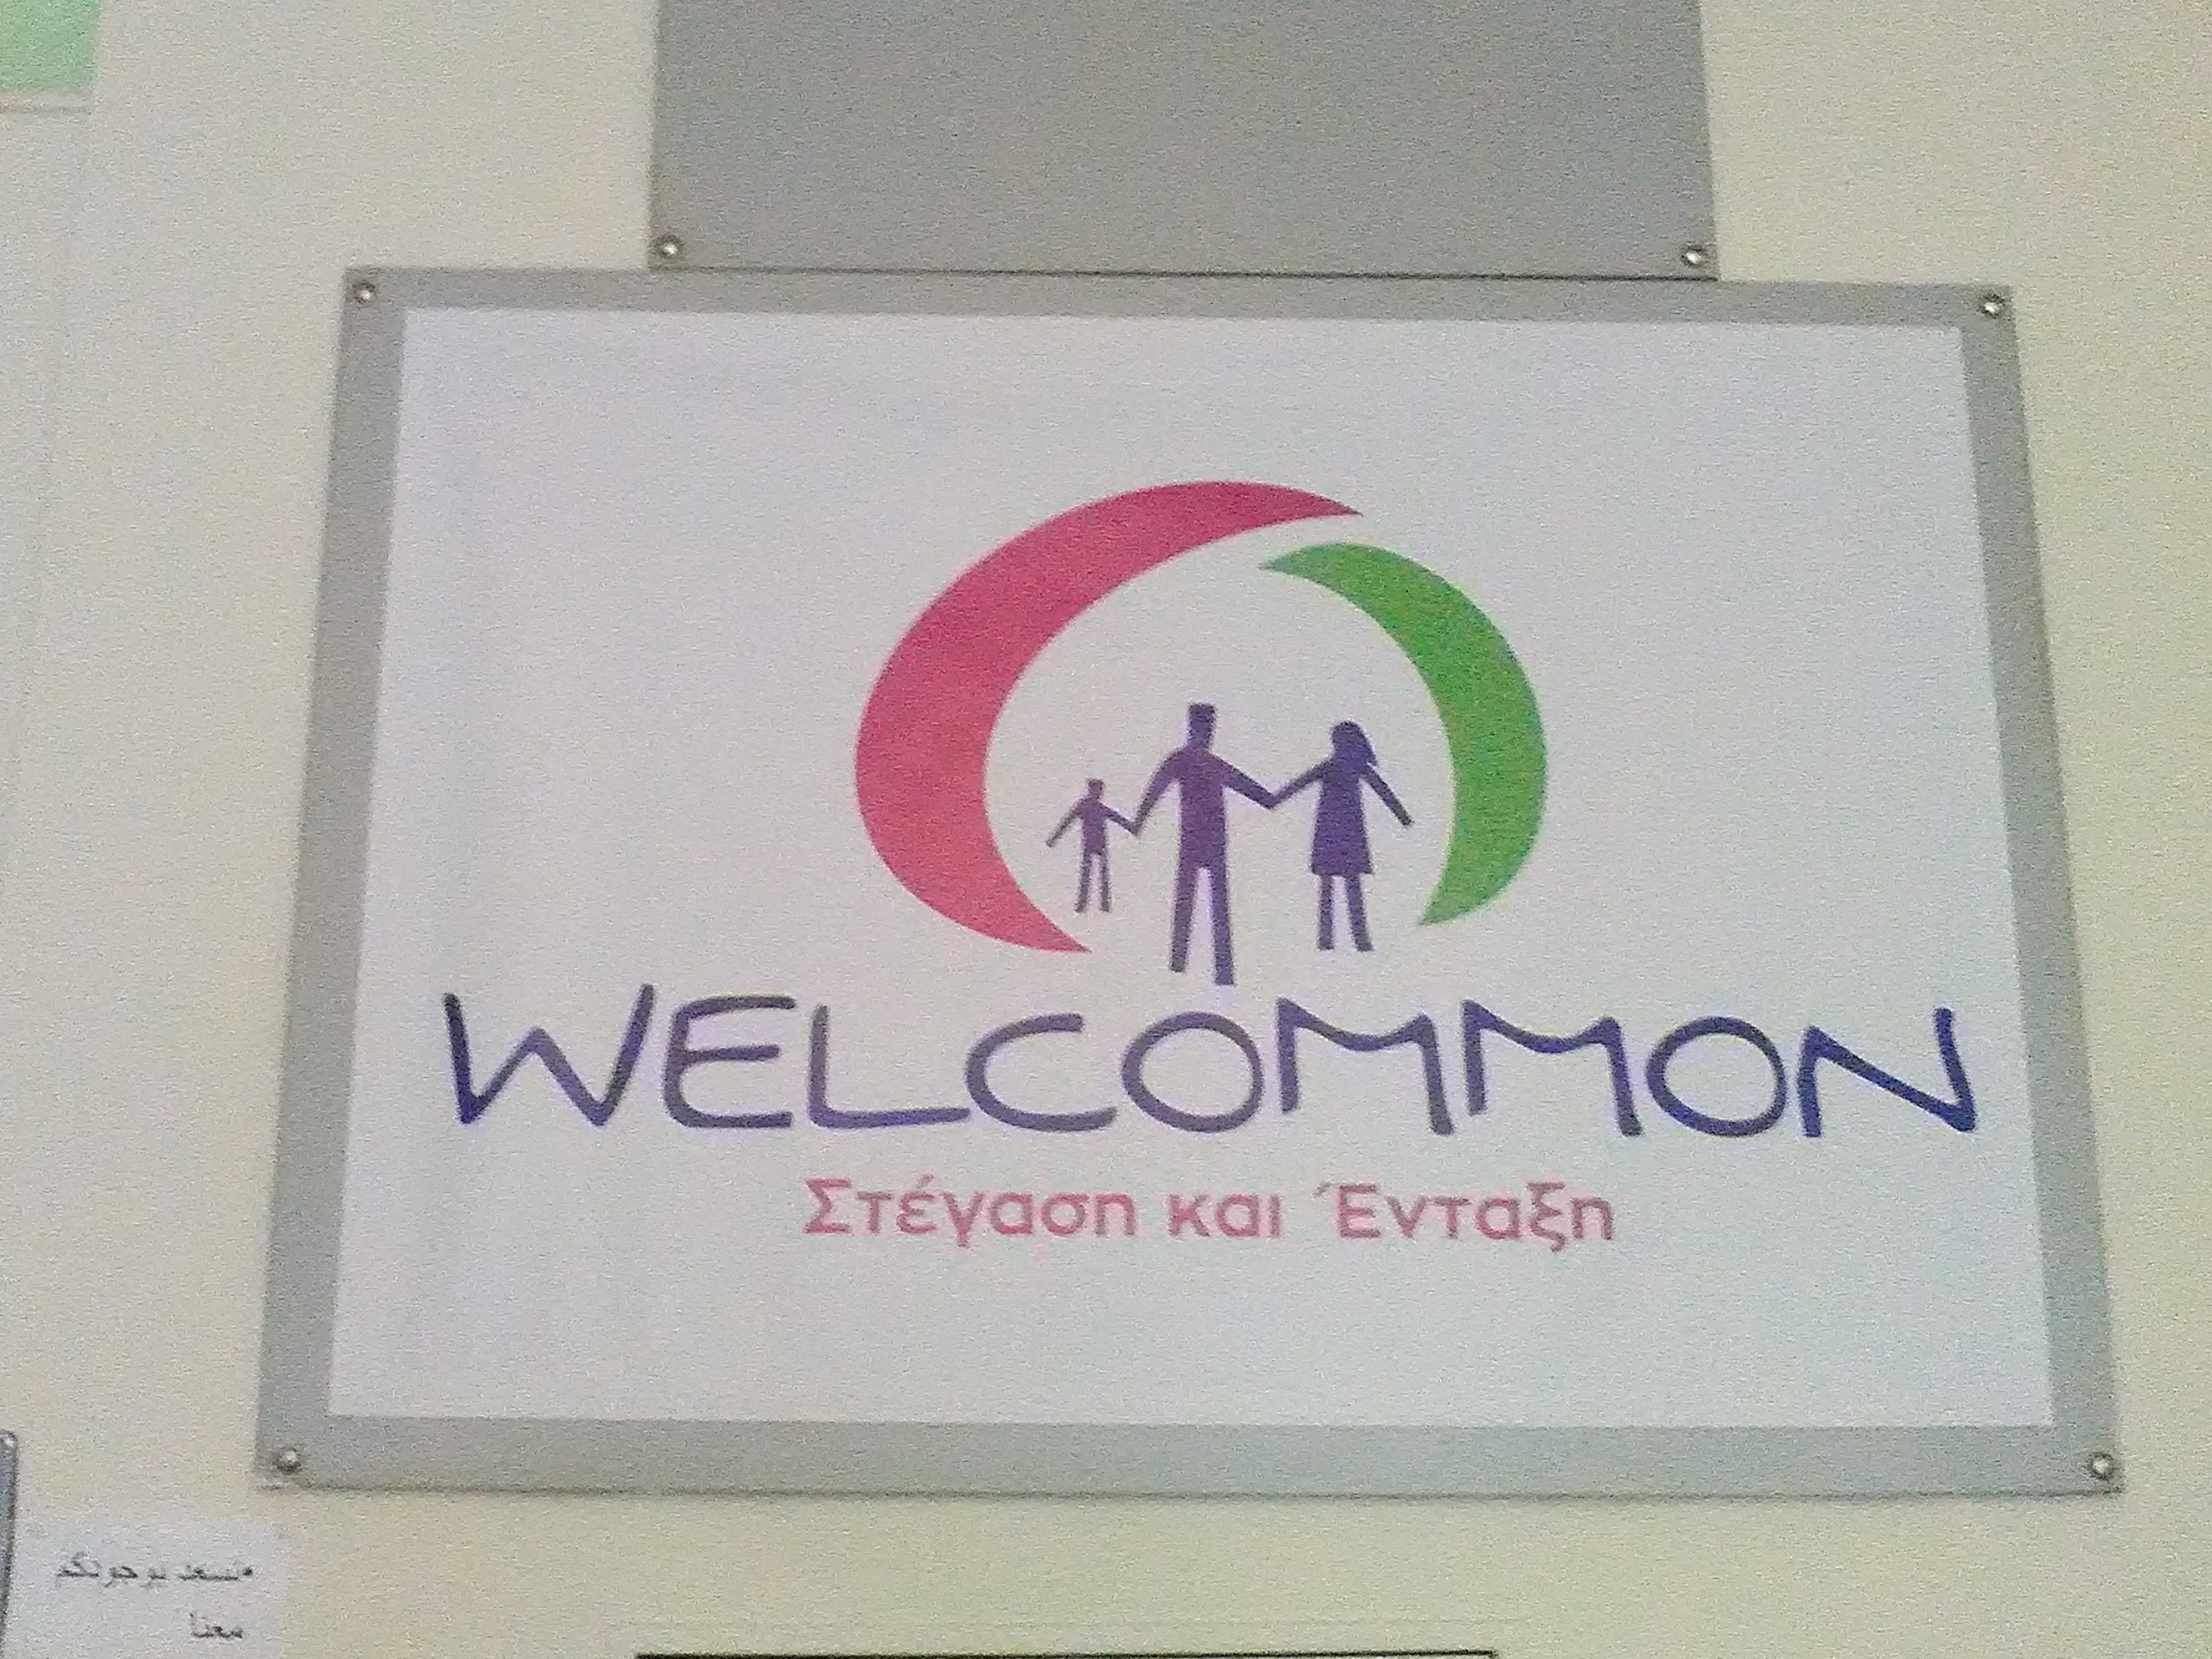 WELCOMMON, an innovative hosting and social inclusion center for refugees: We need your support